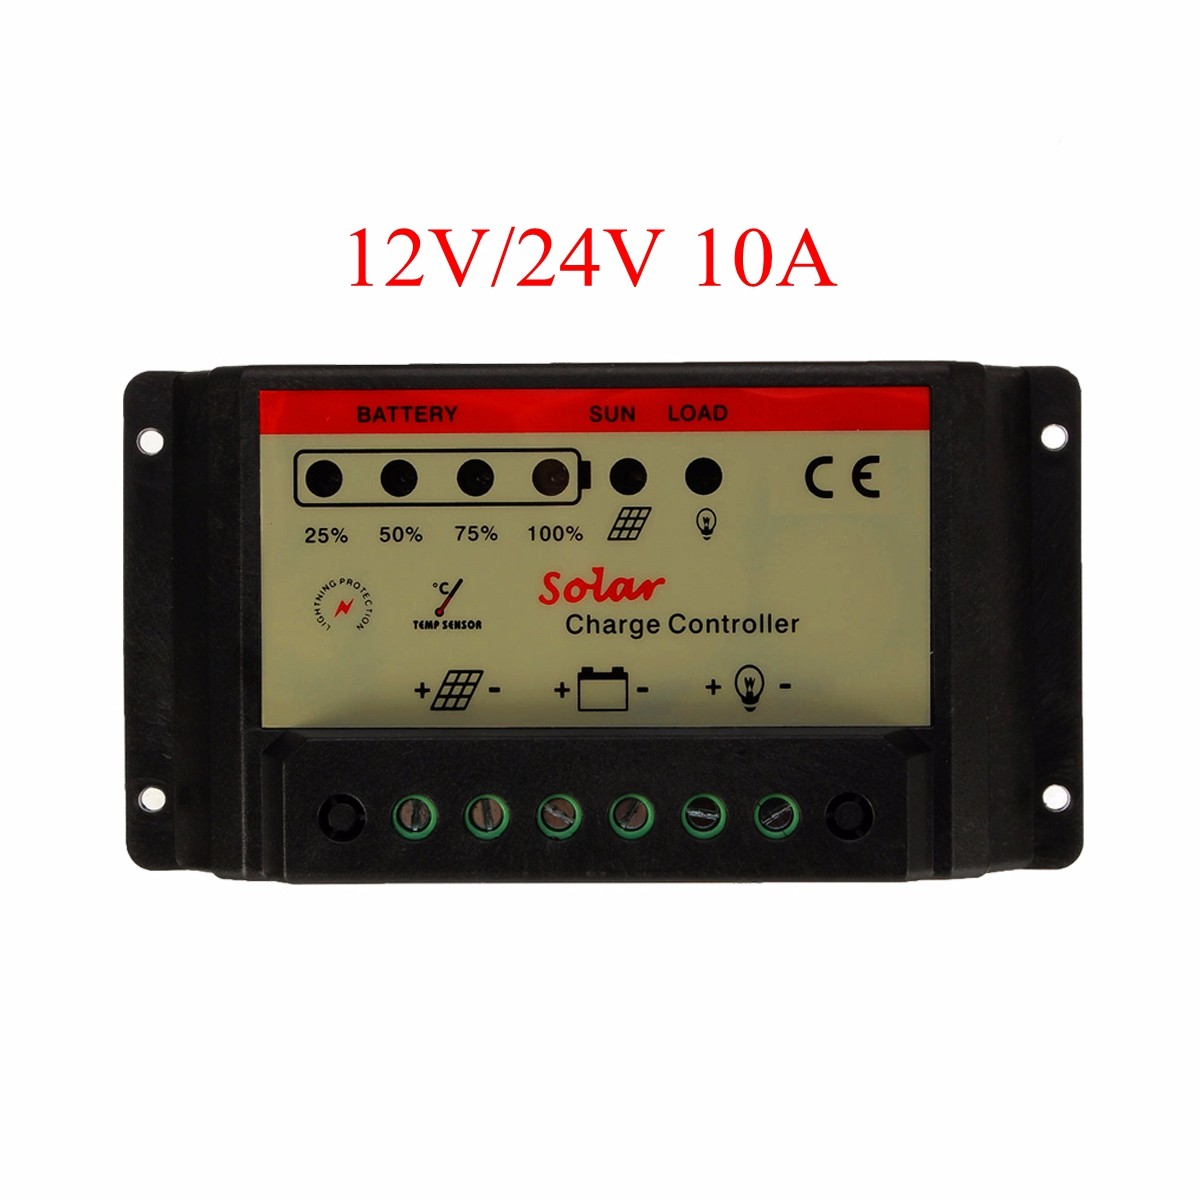 12V 24V 10A Universal PWM Solar Panel Charger Controller Battery Batteries Cells Charging Automatic identification Regulator Pro